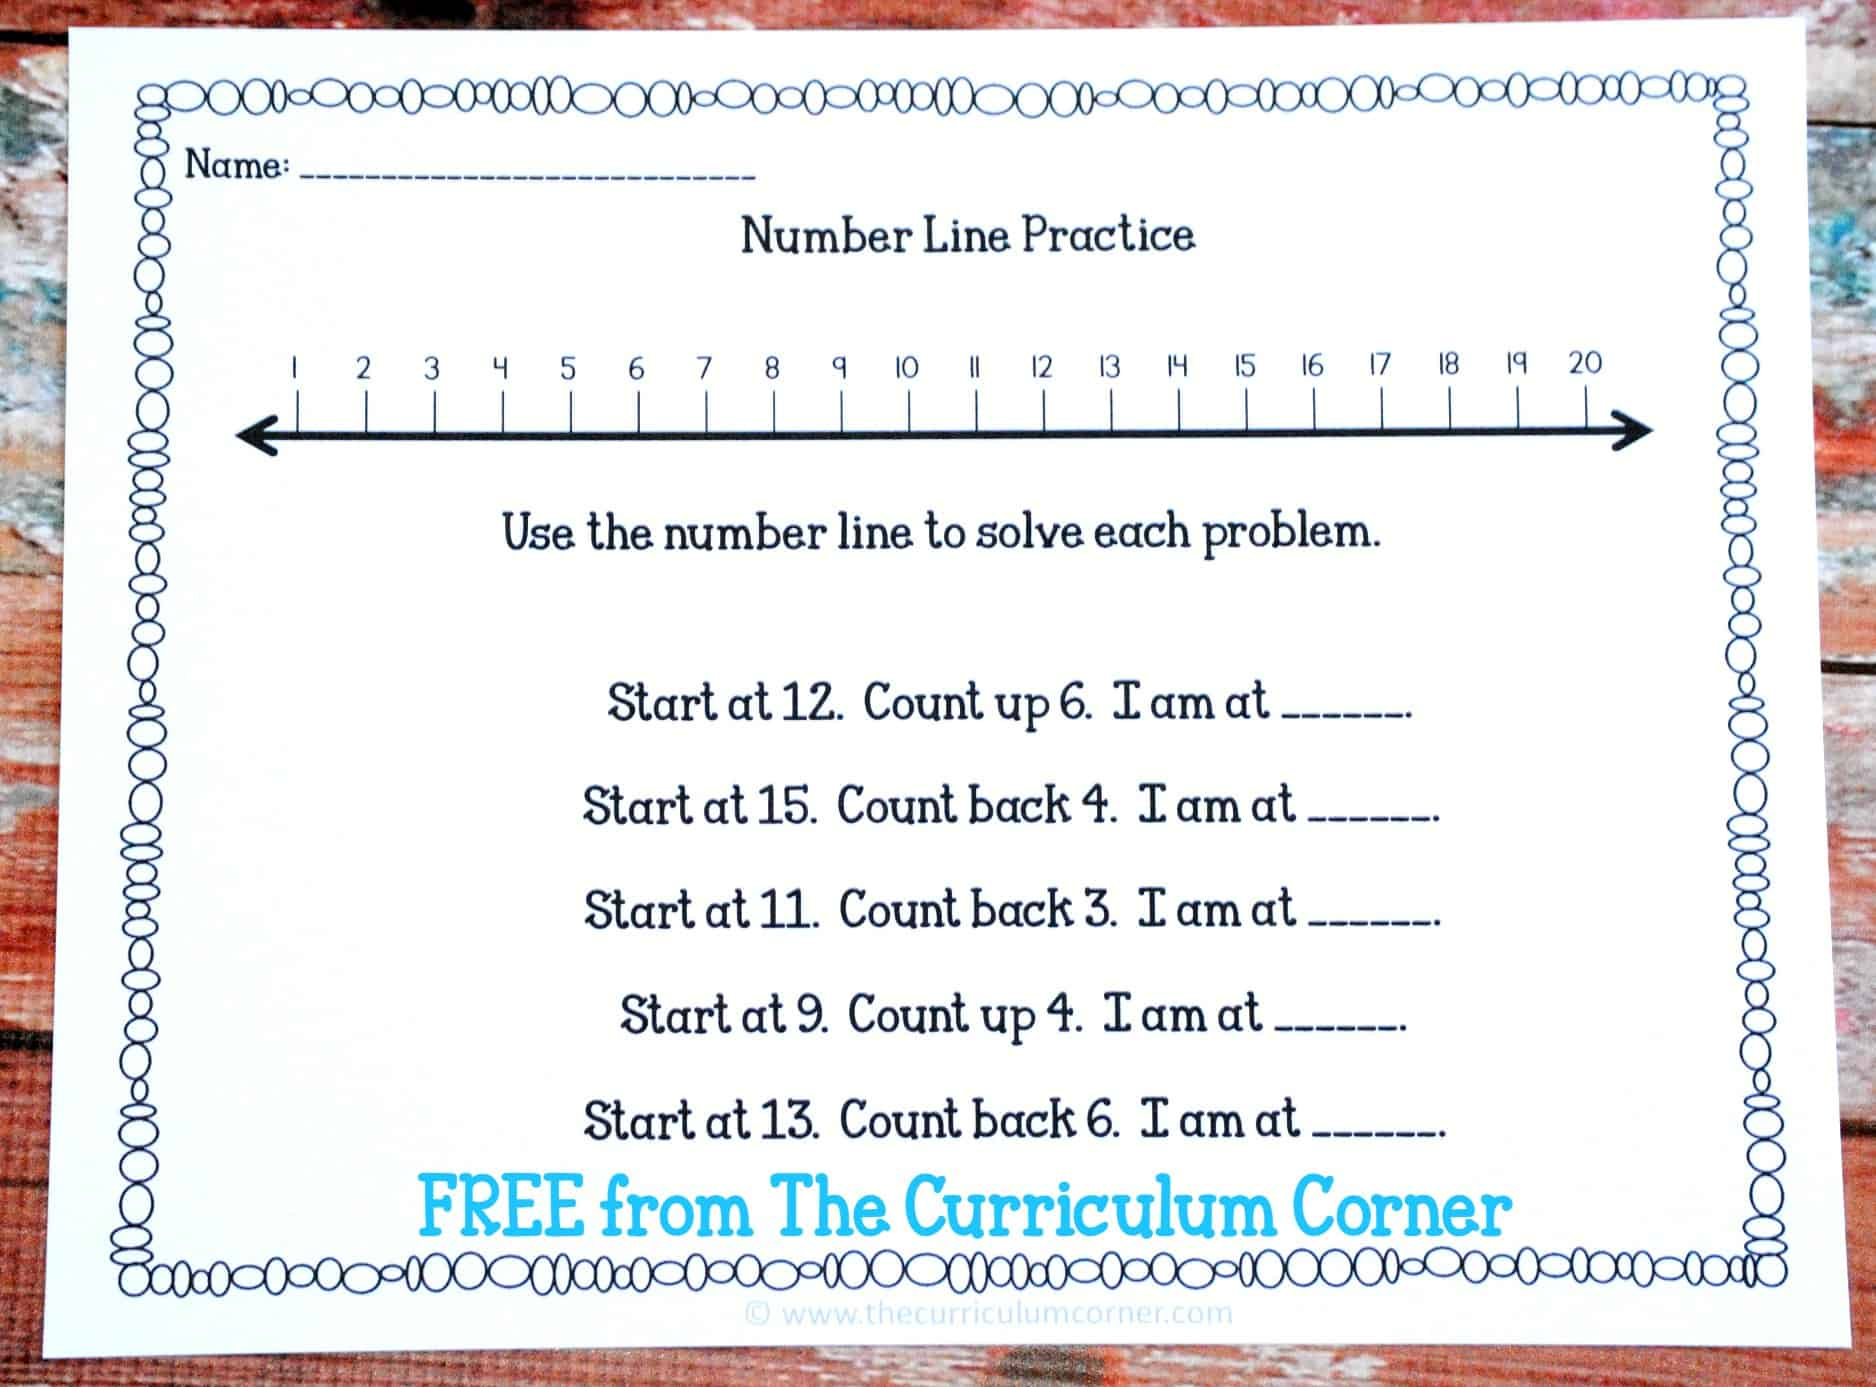 Freebie Numbers Counting Amp Ordering Math Unit Of Study For 1st Amp 2nd Grades Free From The